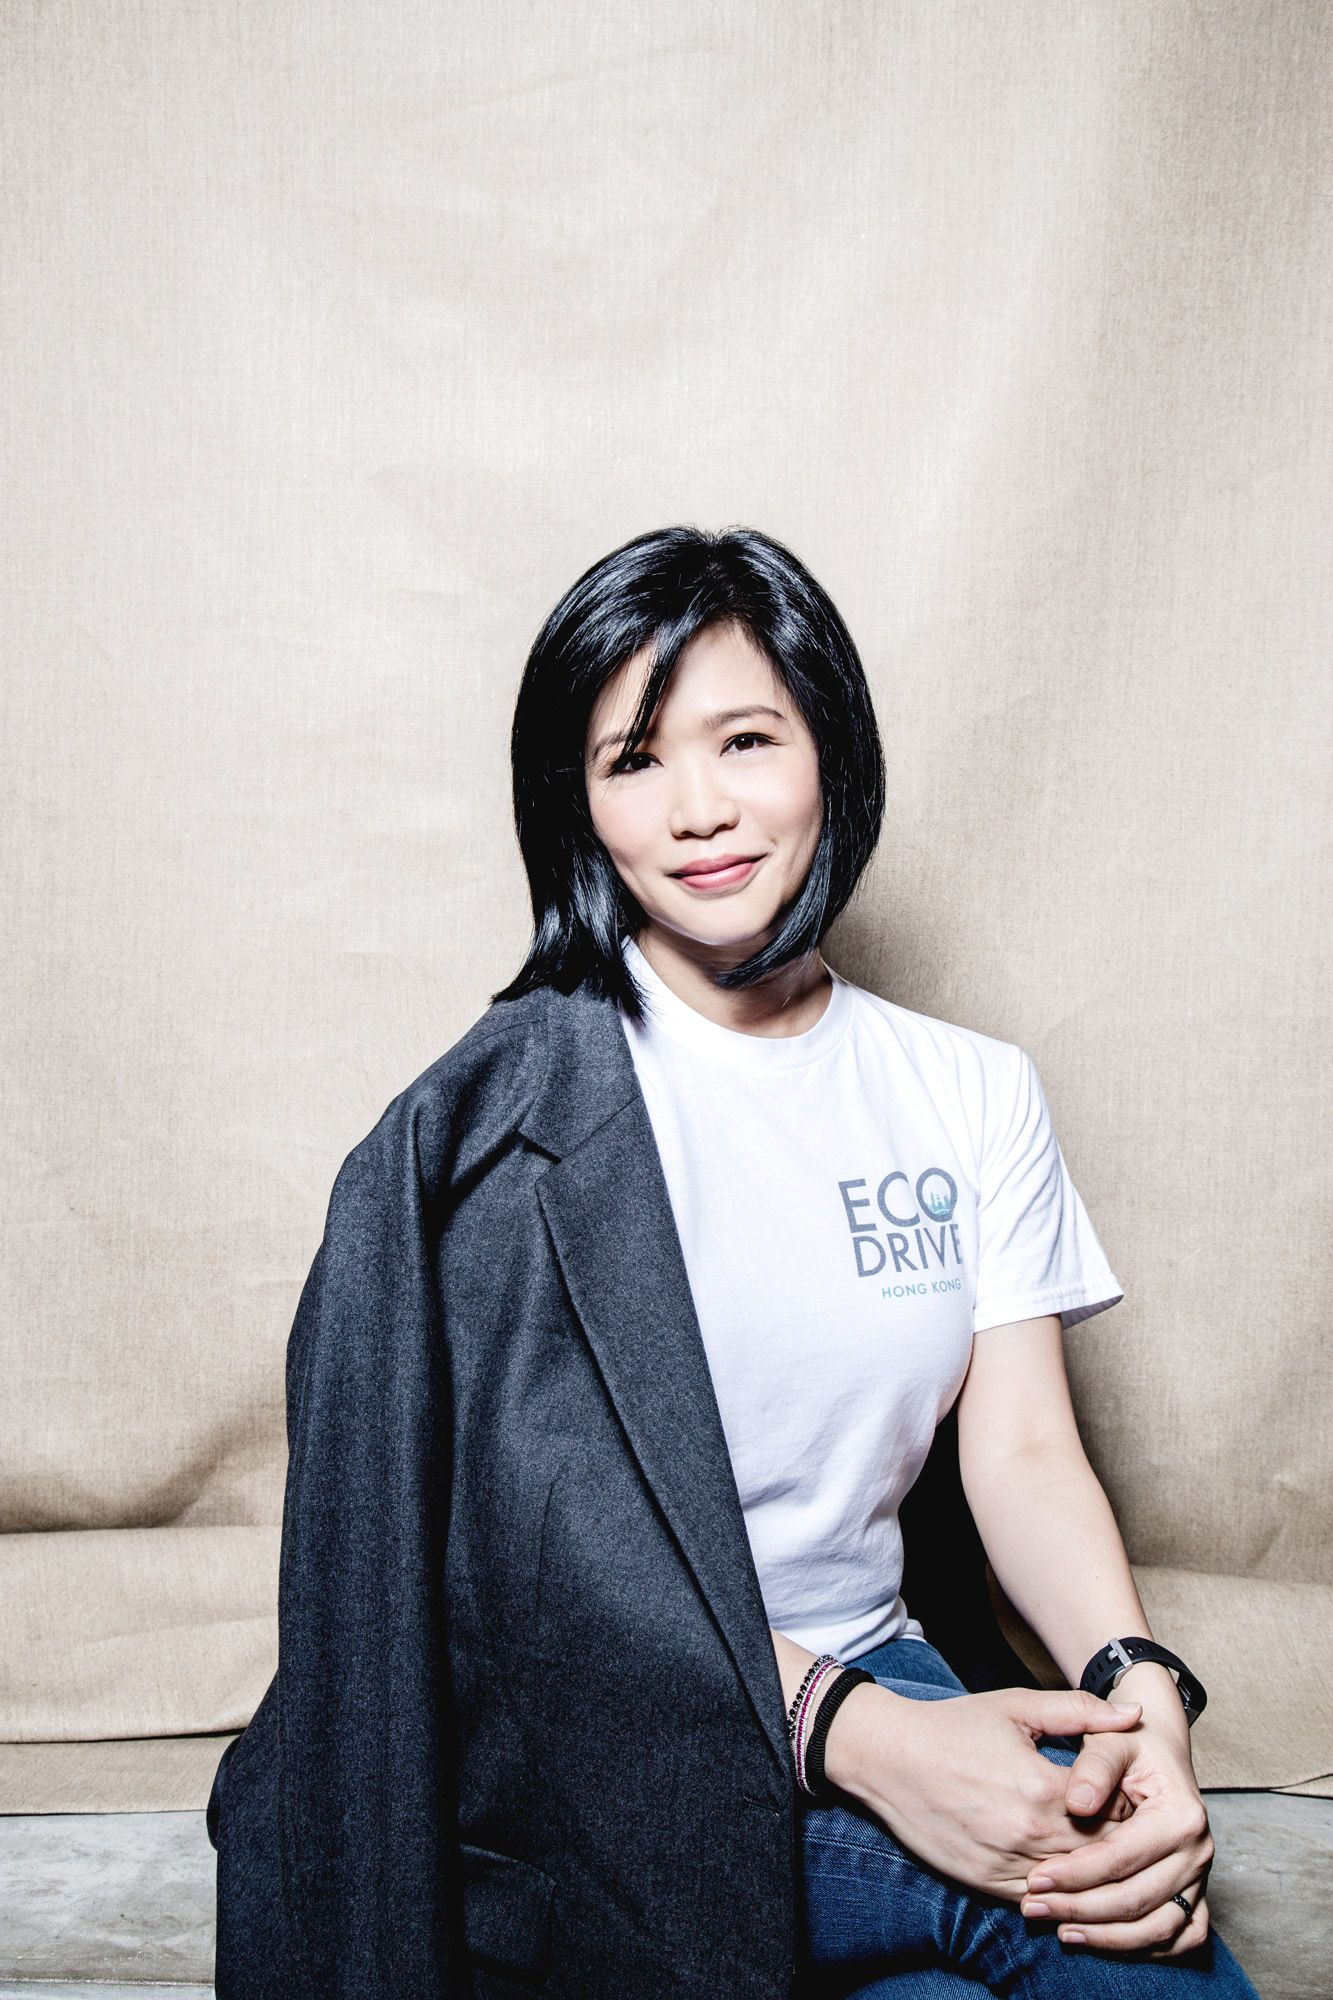 Eco Warriors: Angela Cheng-Matsuzawa Of EcoDrive Hong Kong